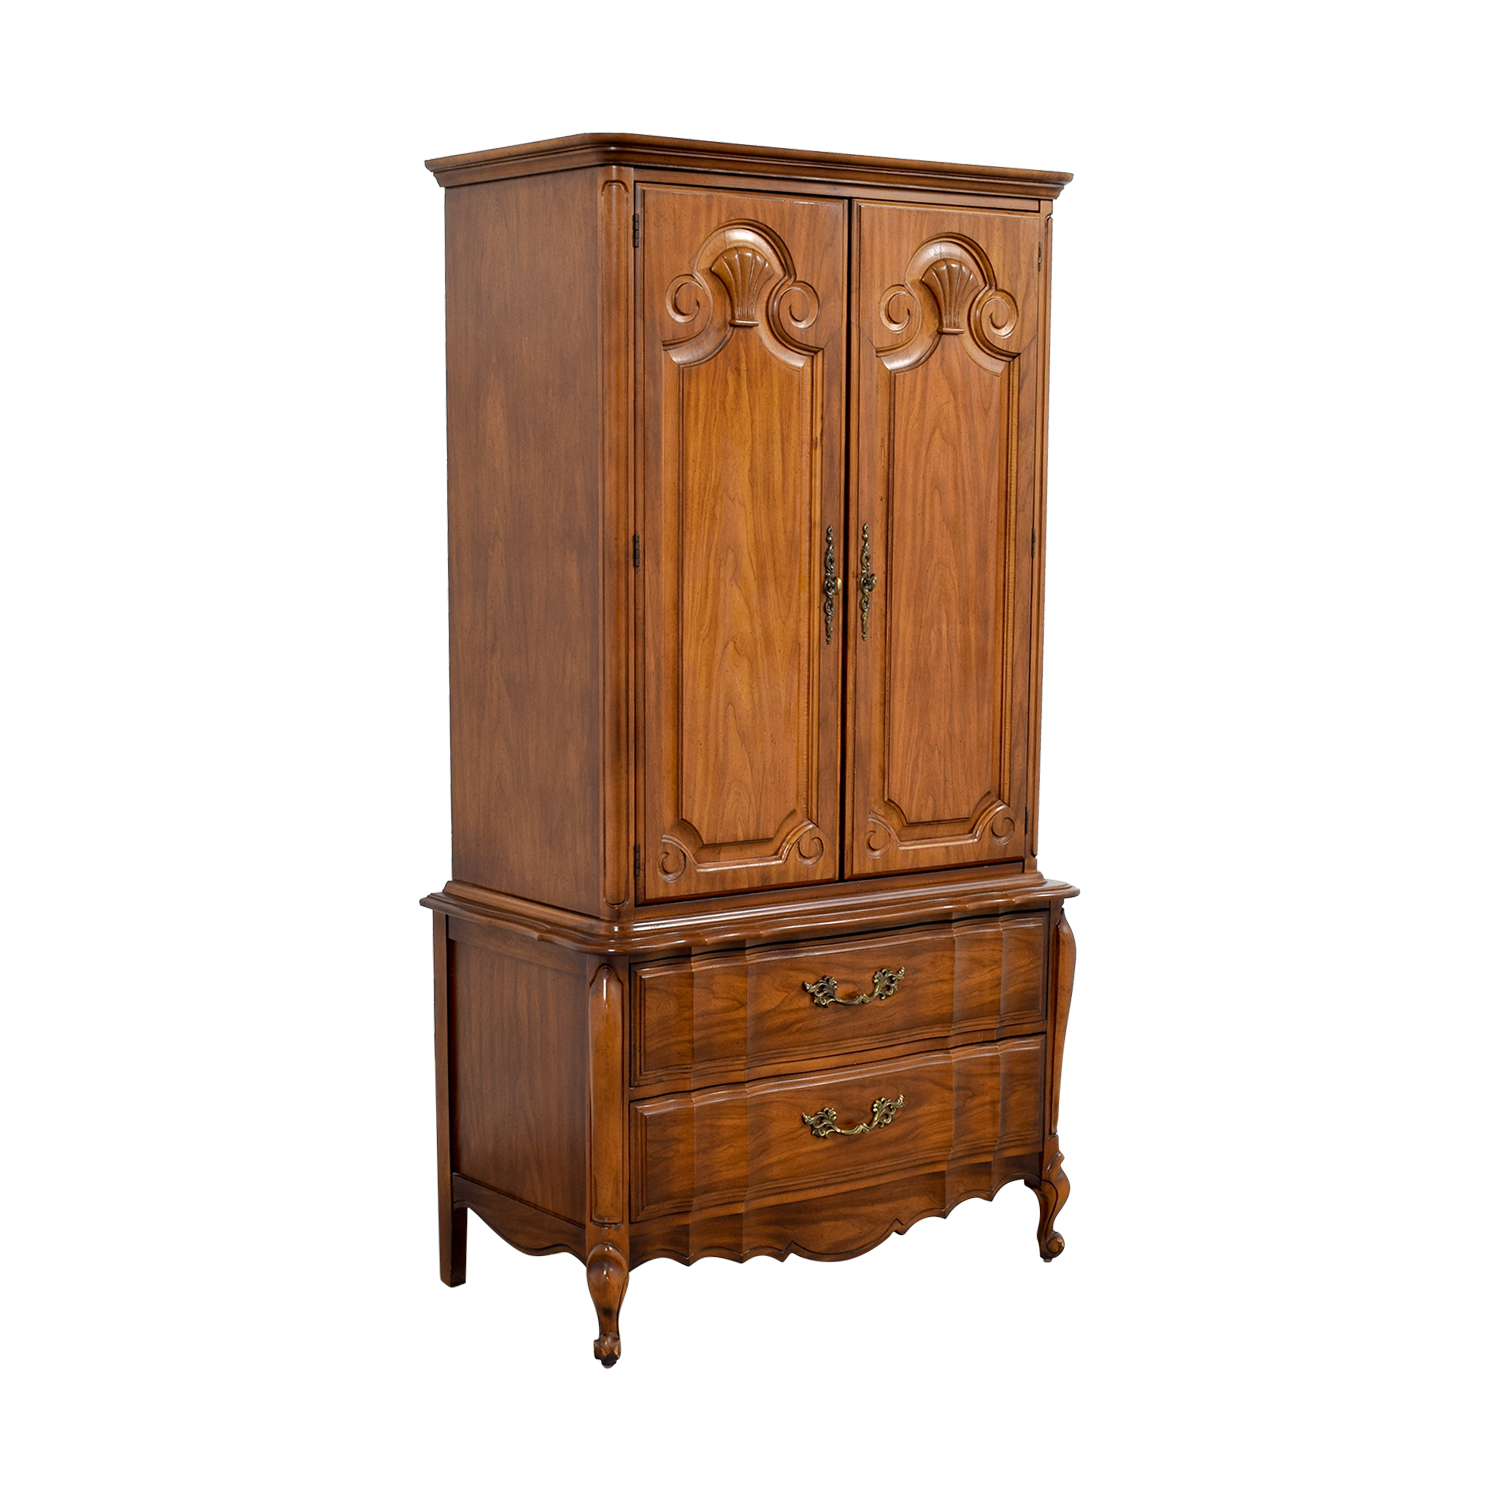 Wood Armoire with Drawers for sale